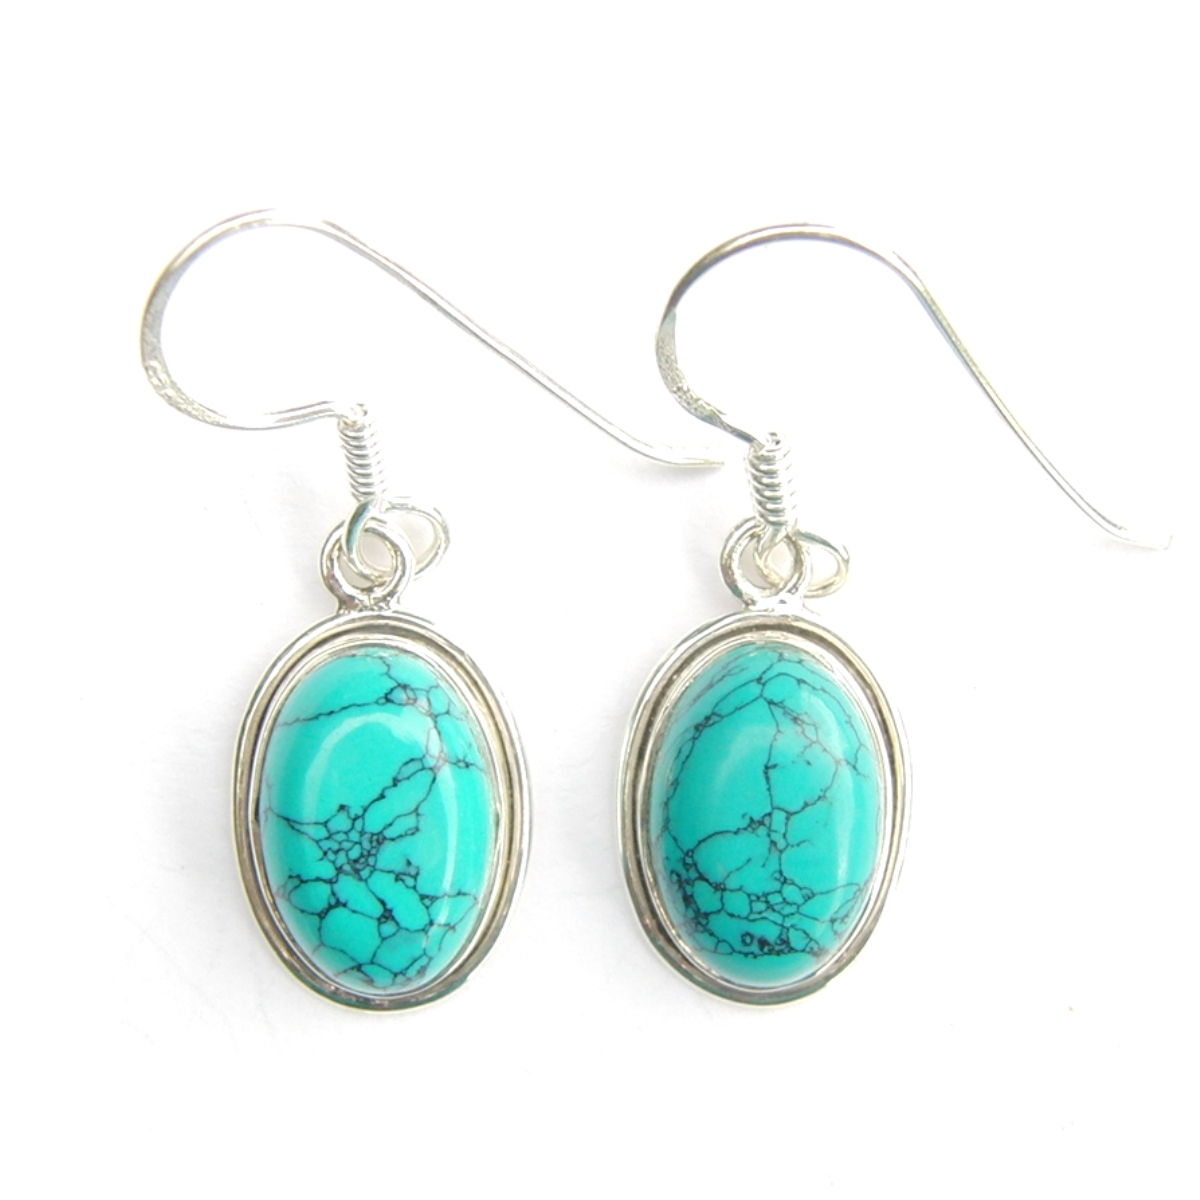 Turquoise Oval Cab Earrings.